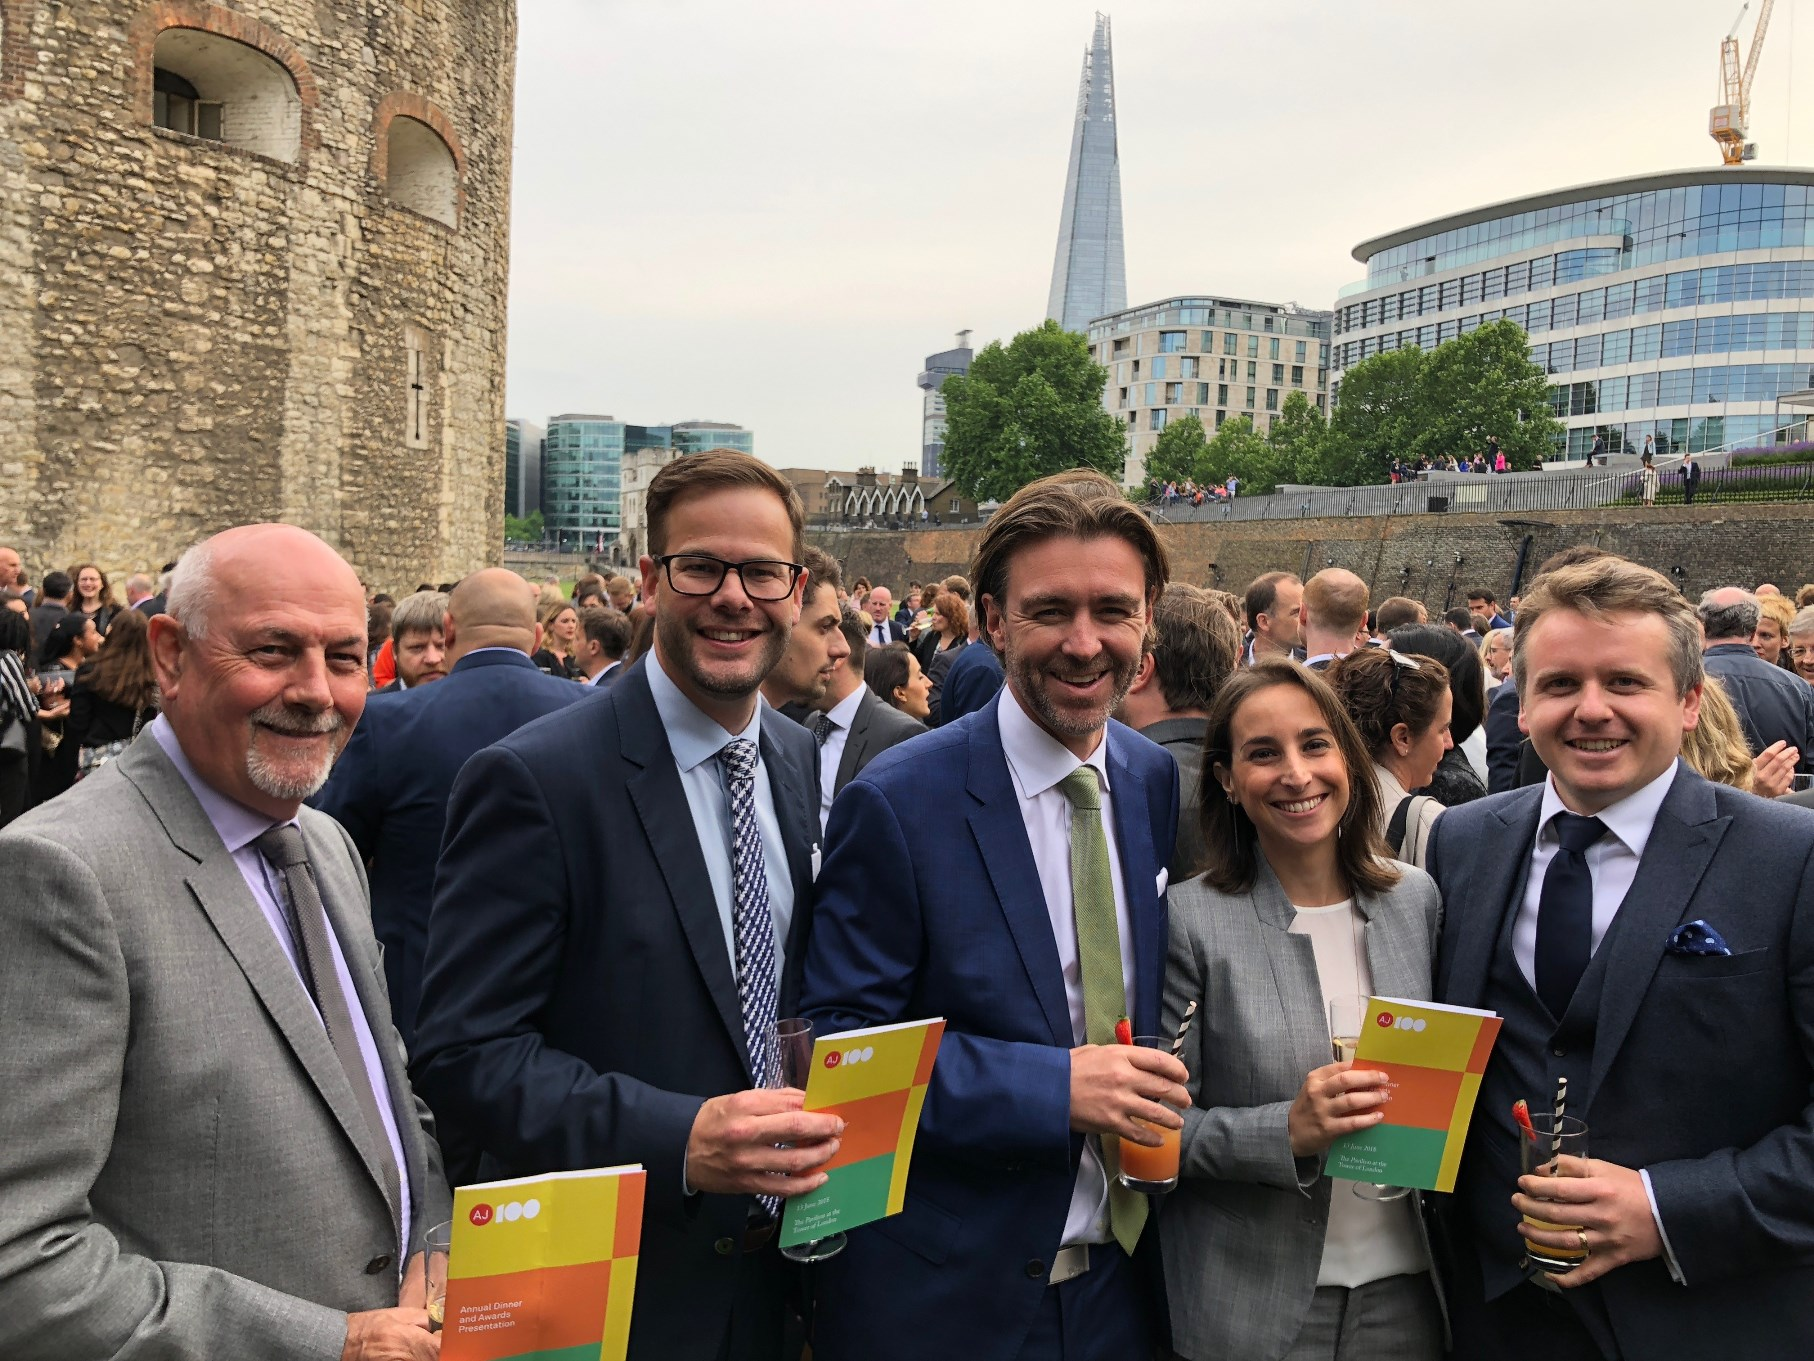 Team rg+p celebrate their New Member of the Year Award at the Tower of London (l-r) Melvyn King, Rob Woolston, James Badley, Victoria Torres and Grant Giblett.